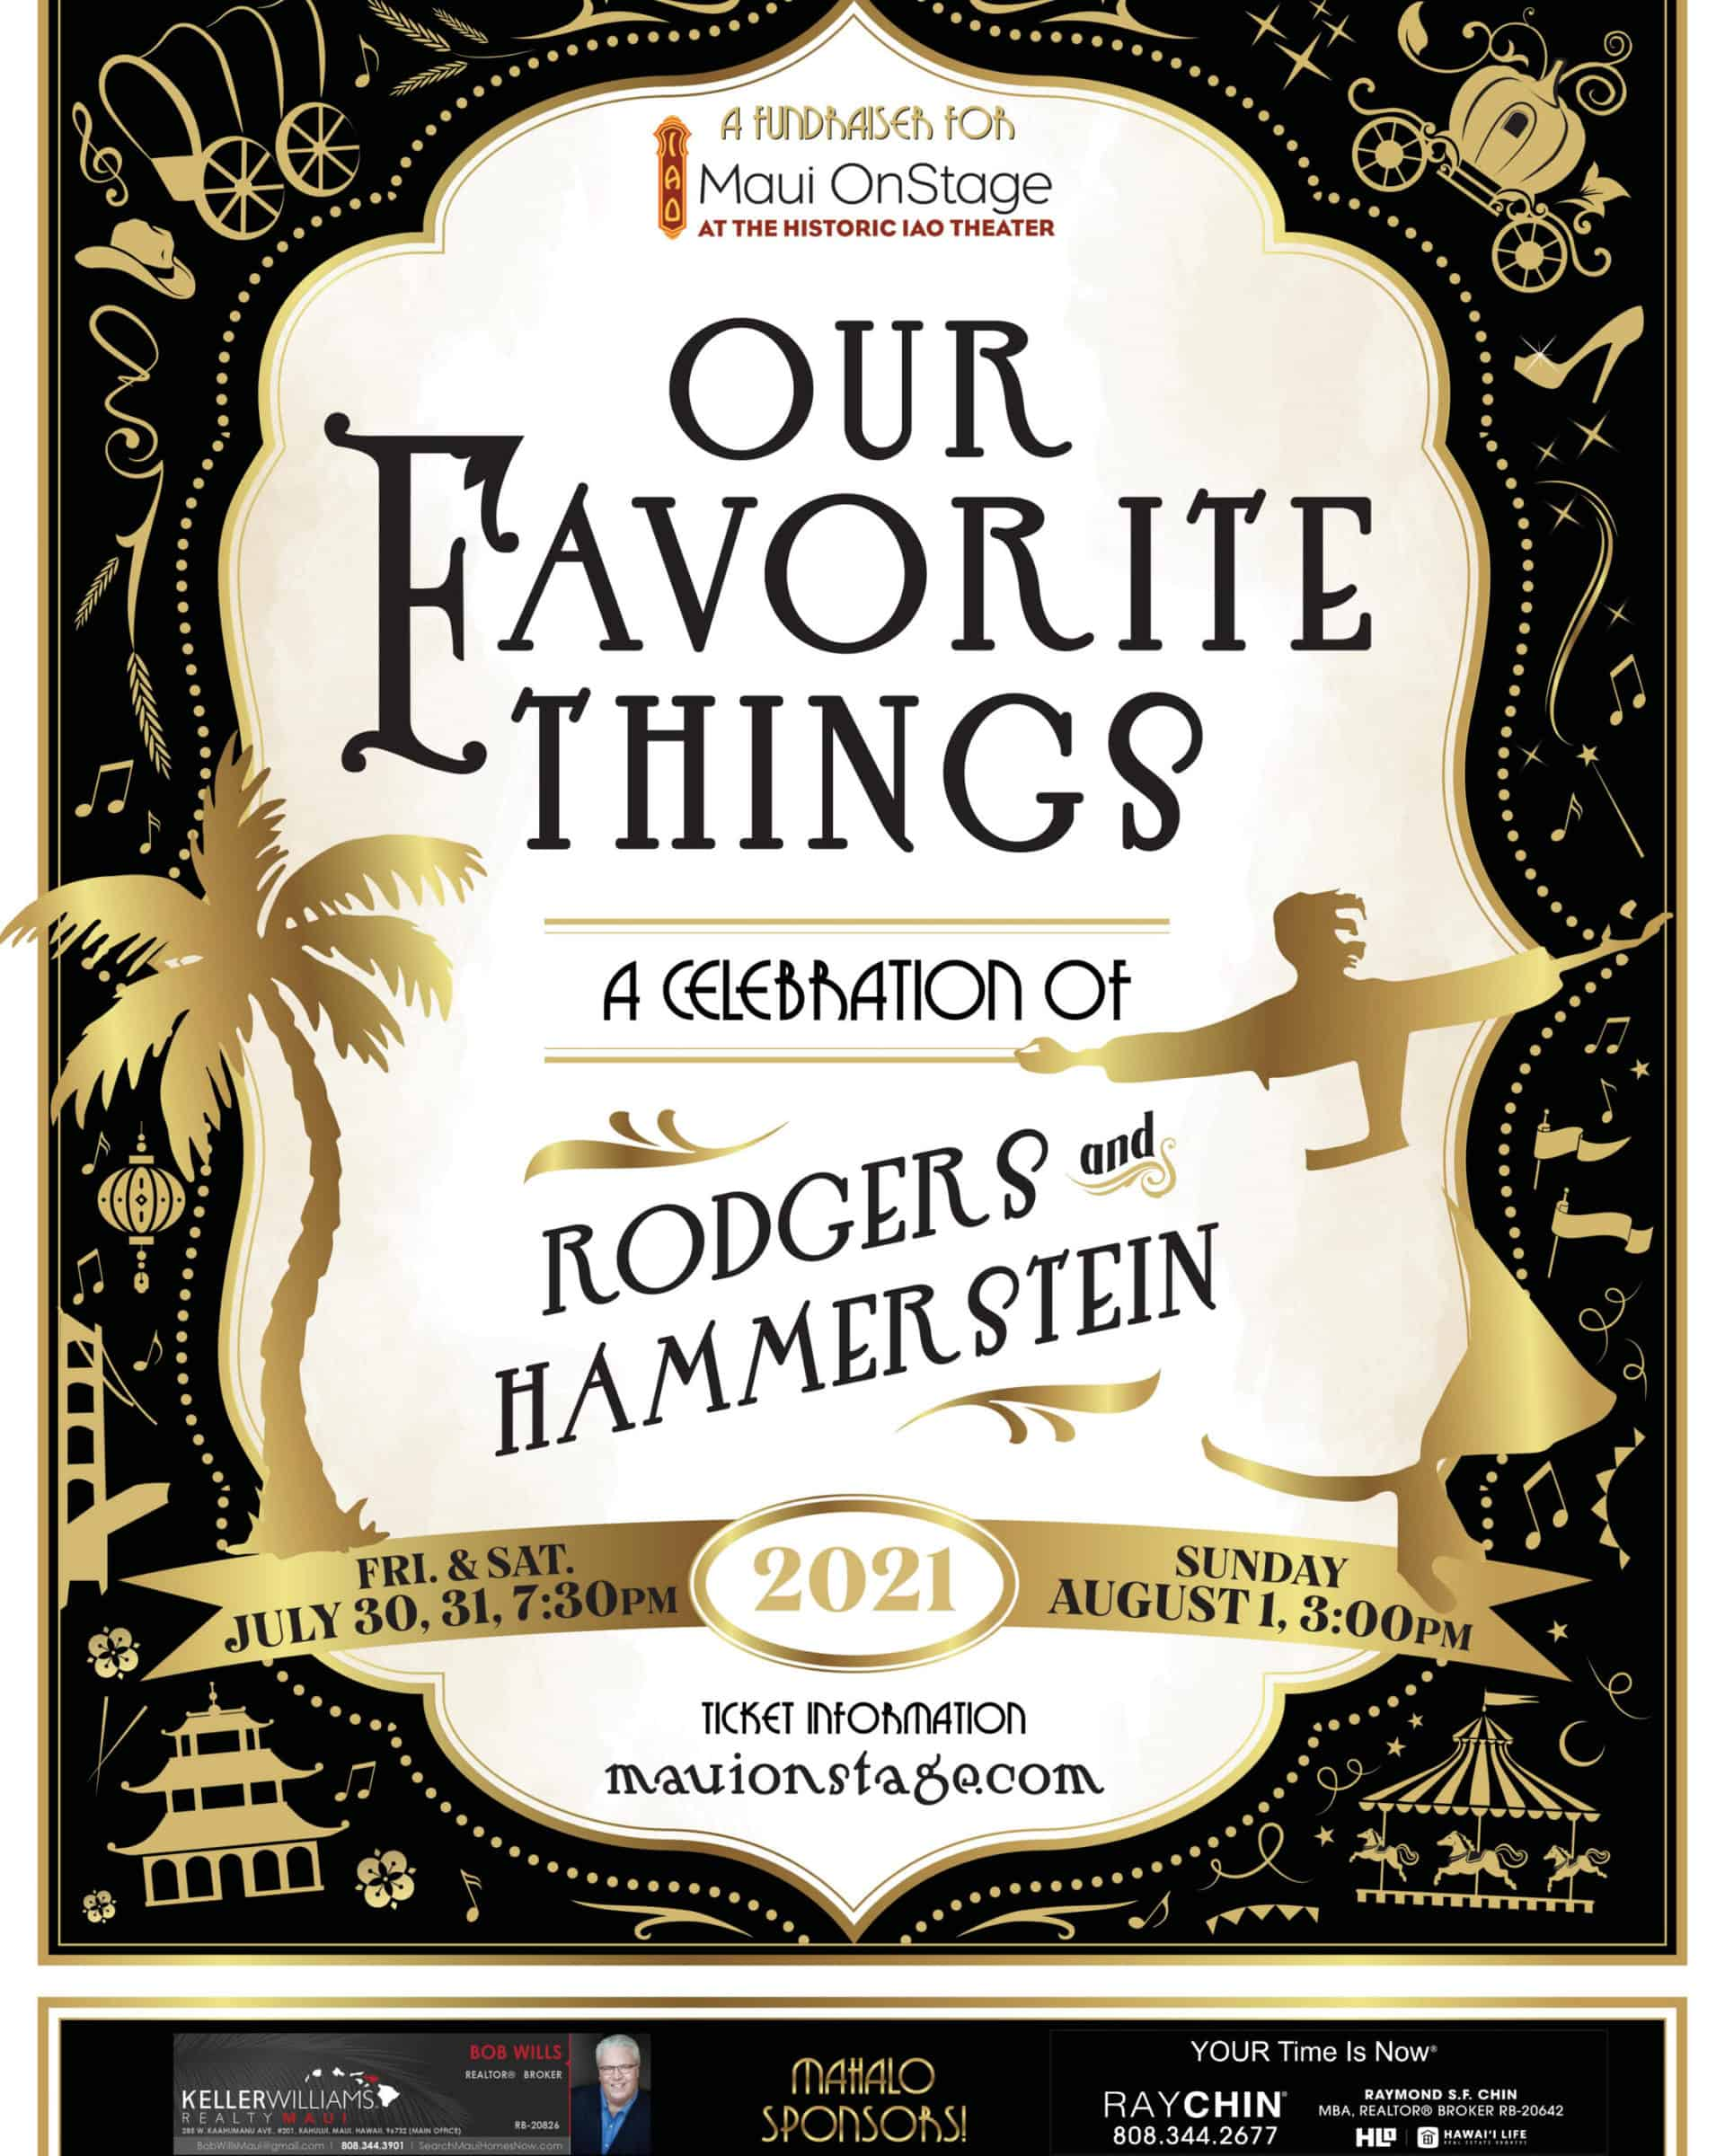 Our Favorite Things…A Celebration of Rodgers and Hammerstein